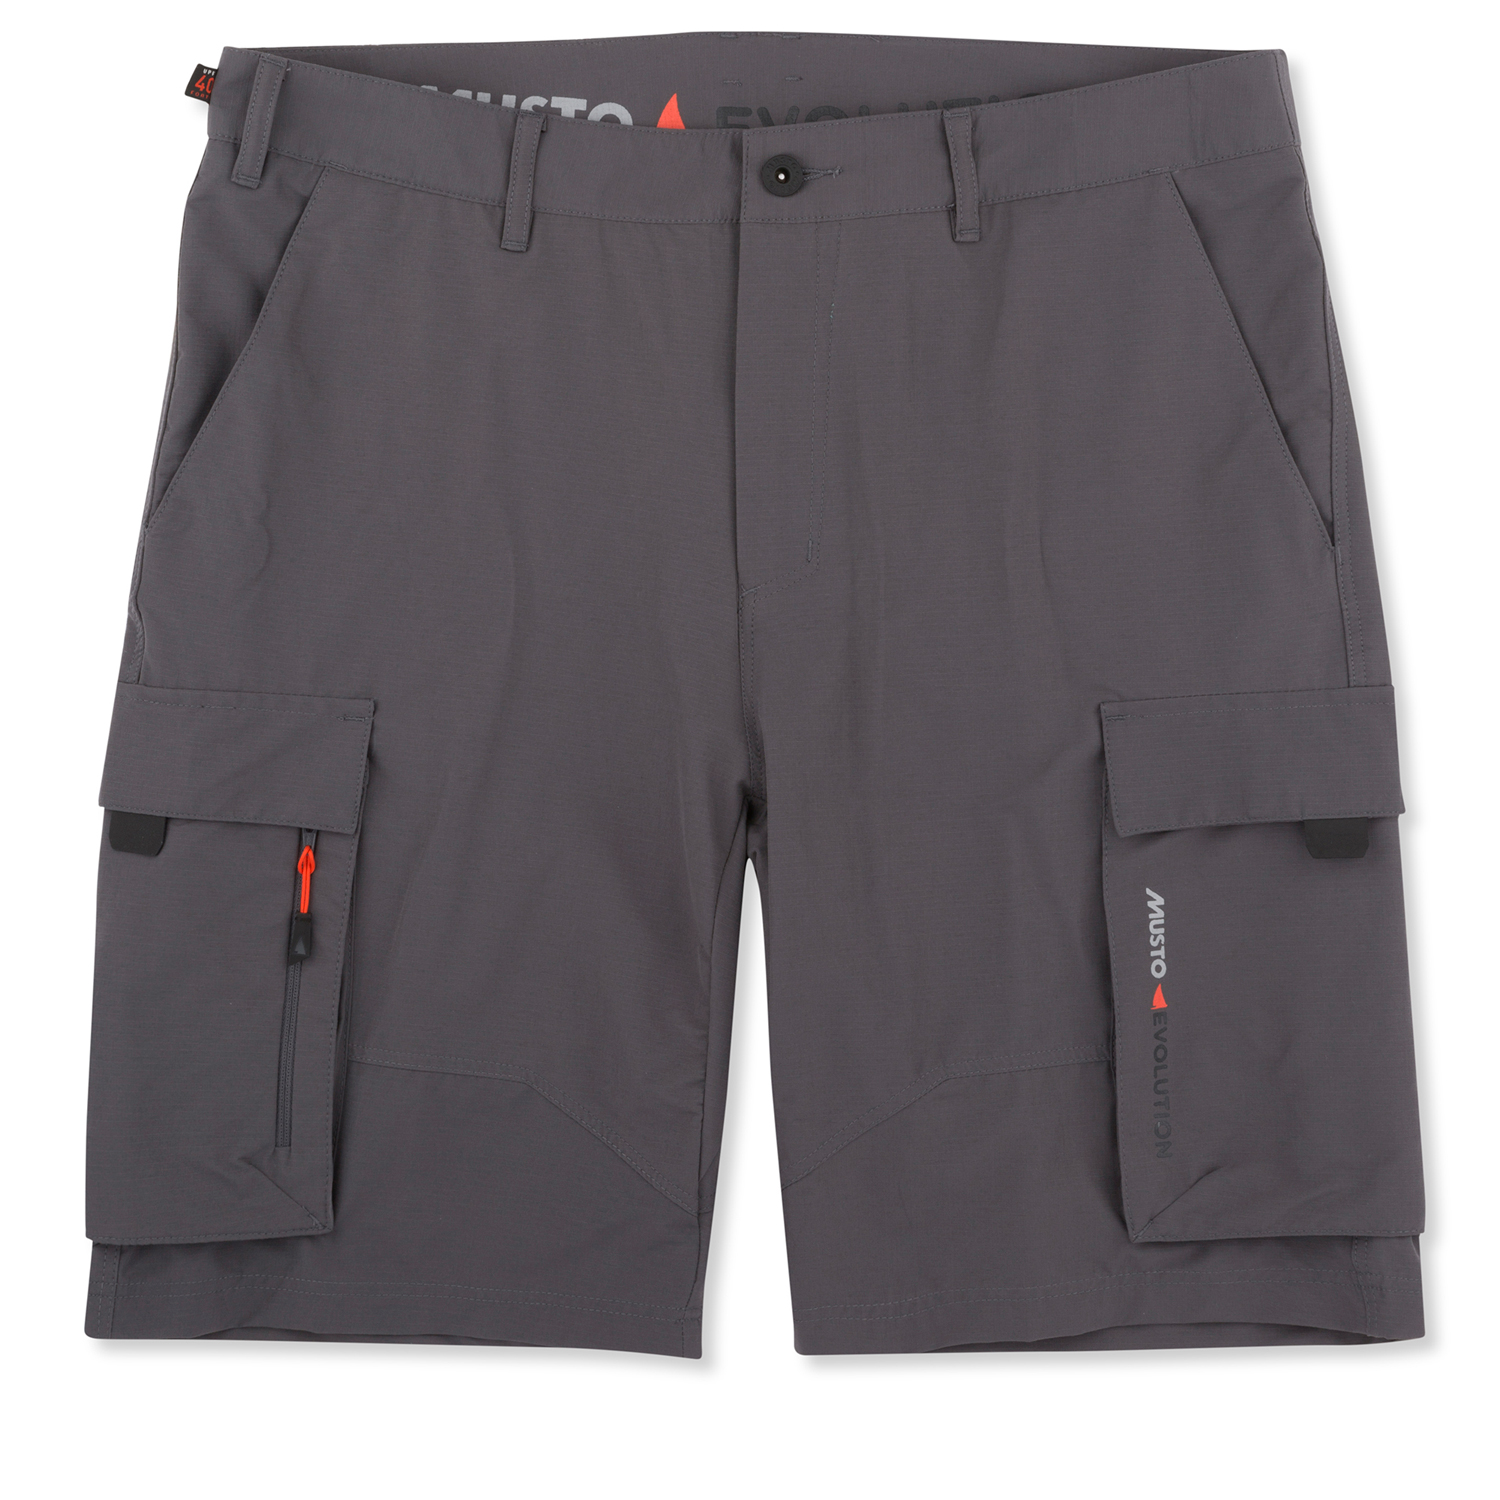 Musto Deck Uv Fast Dry Short 2018 Charcoal Coast Water Sports